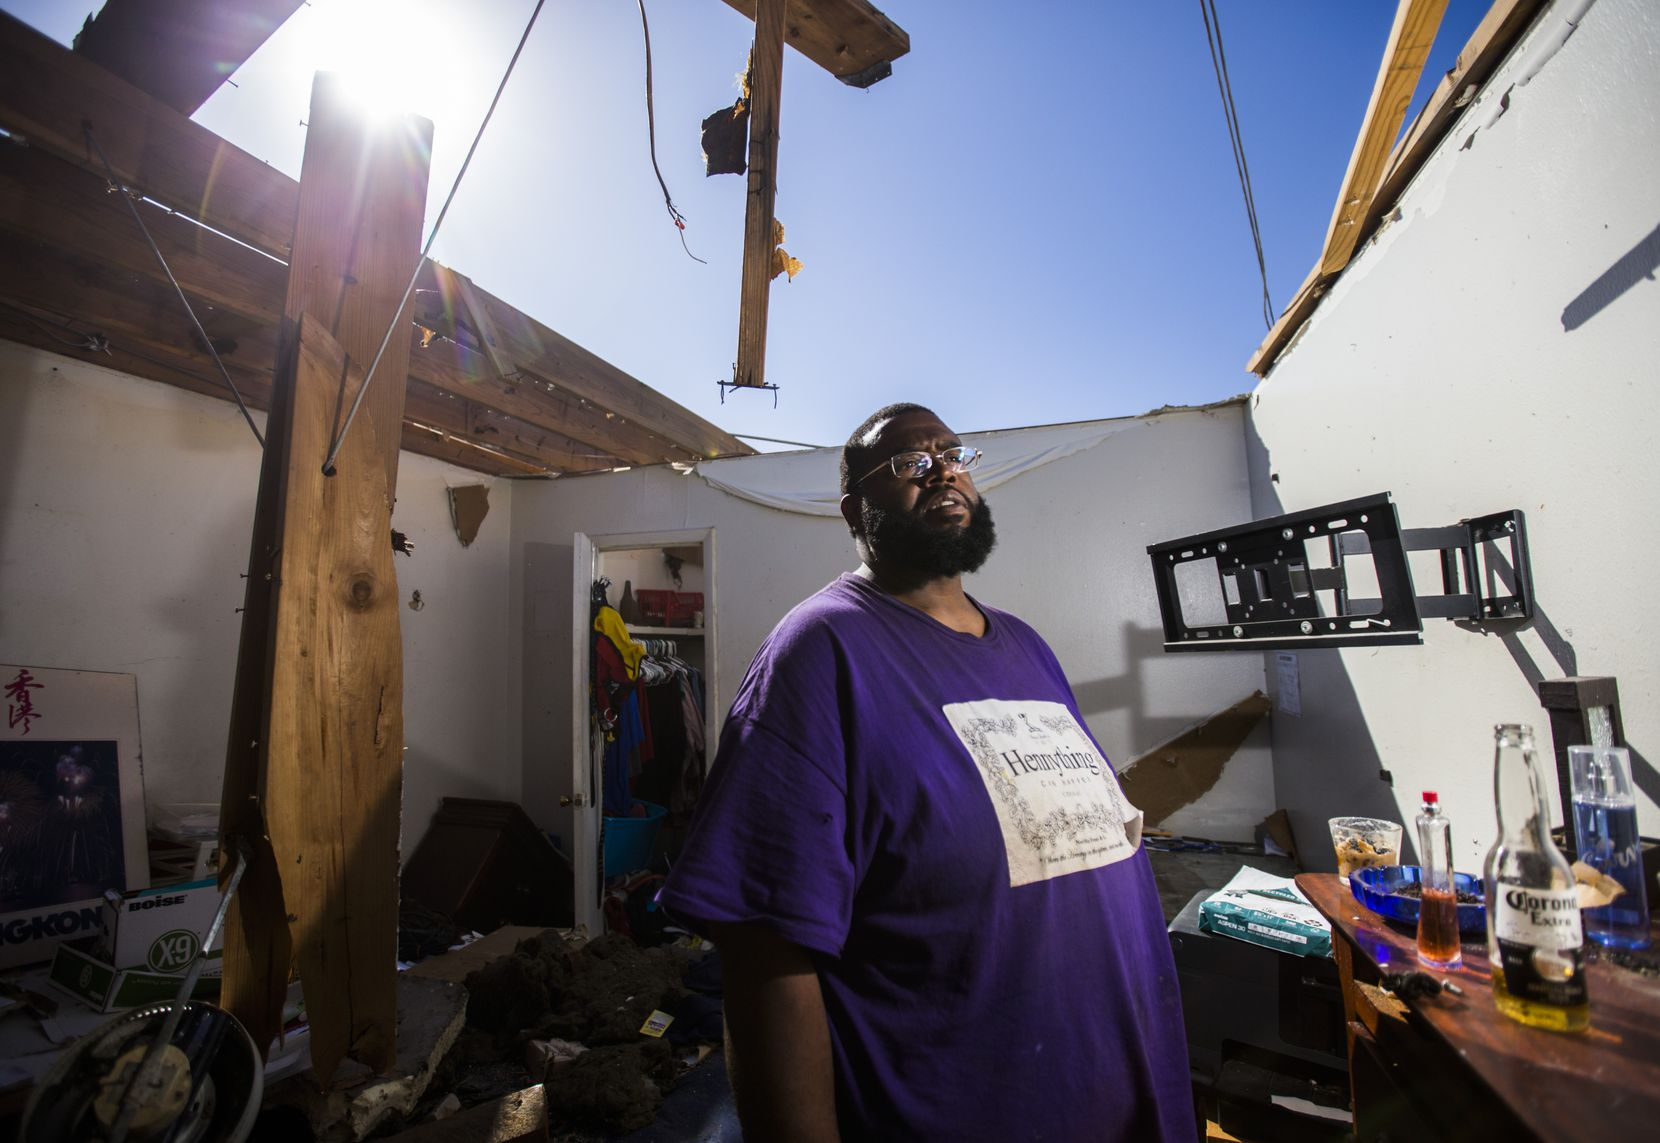 Alvin Dunbar was a resident of the Southwind until Oct. 20, when the tornado tore the roof off his townhouse. This portrait was taken three days after the storm.